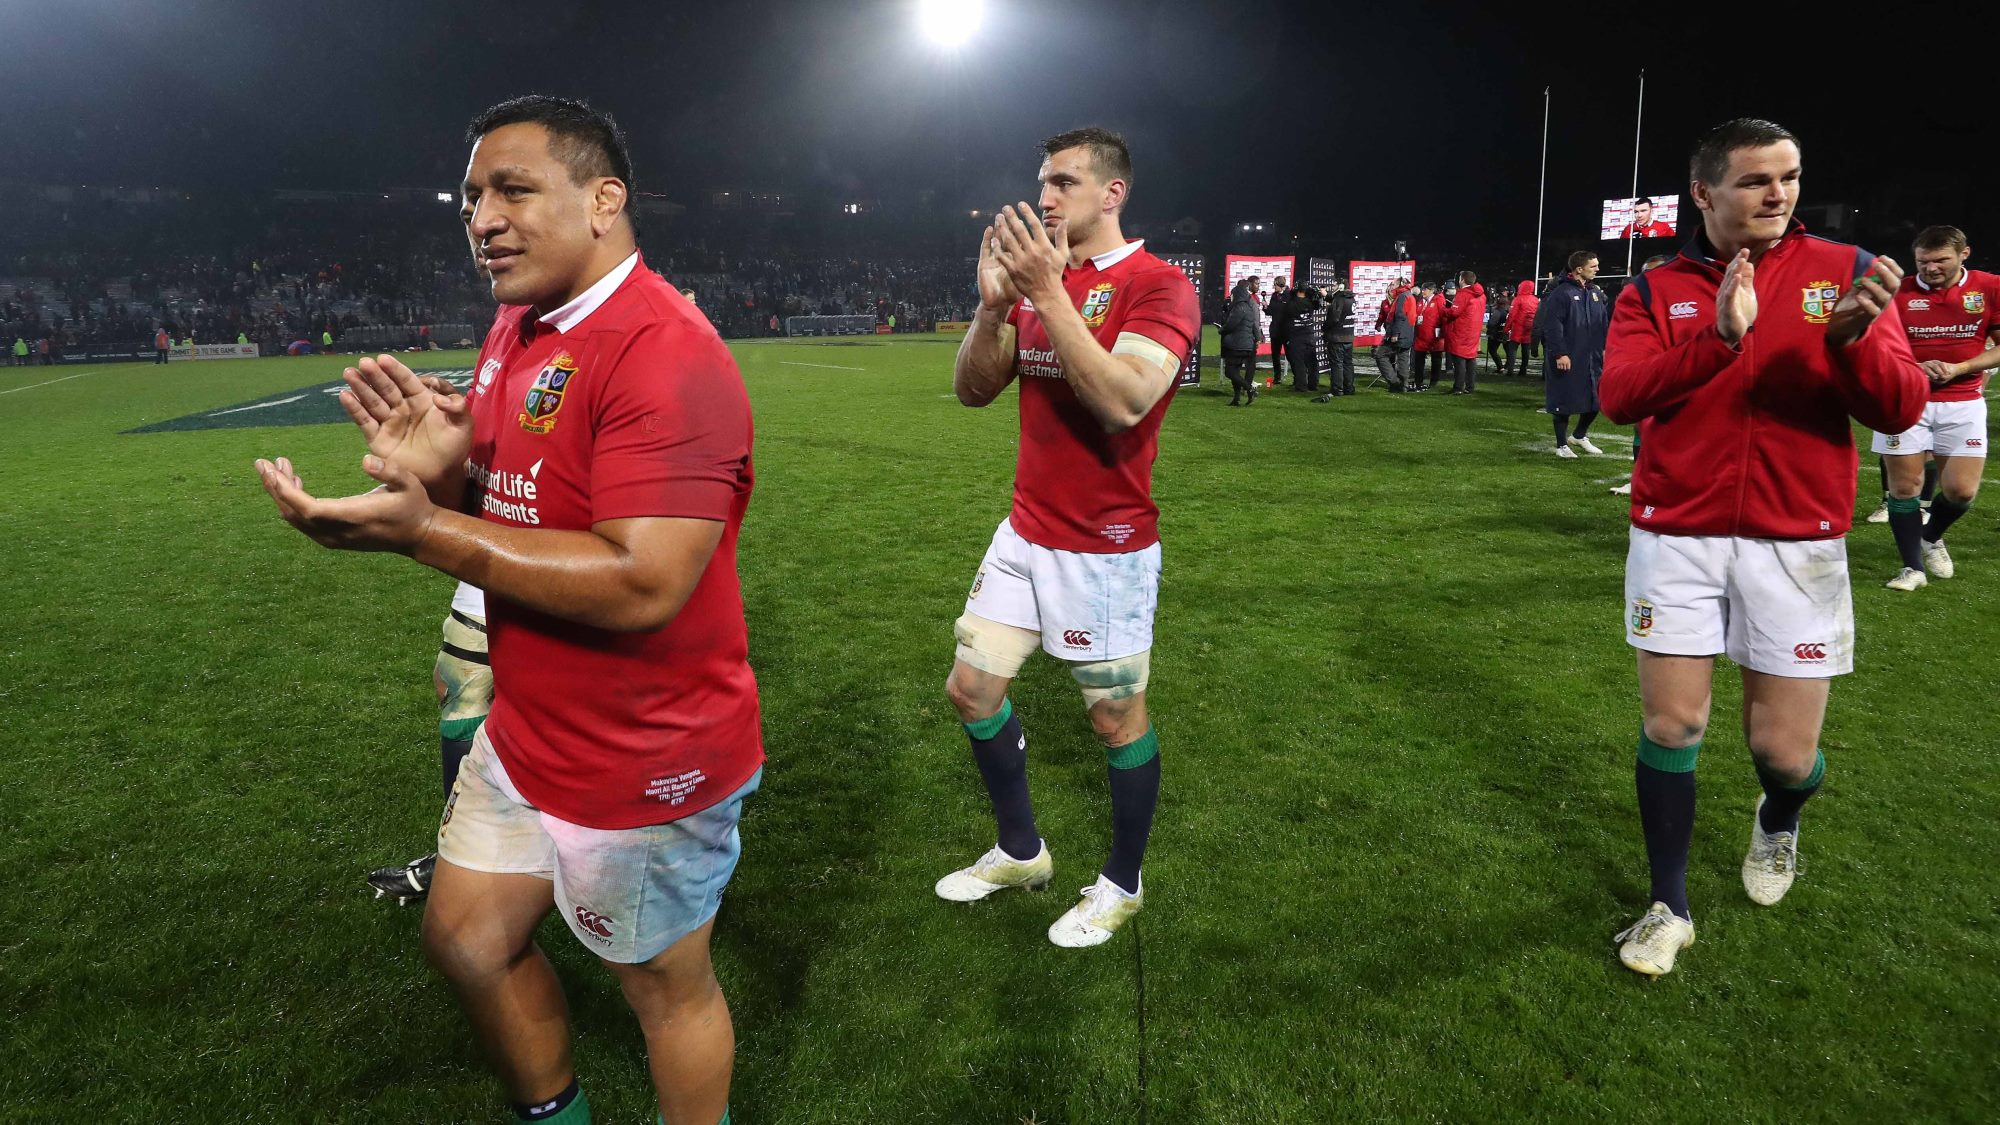 Vunipola tips Lions to improve on Maori display